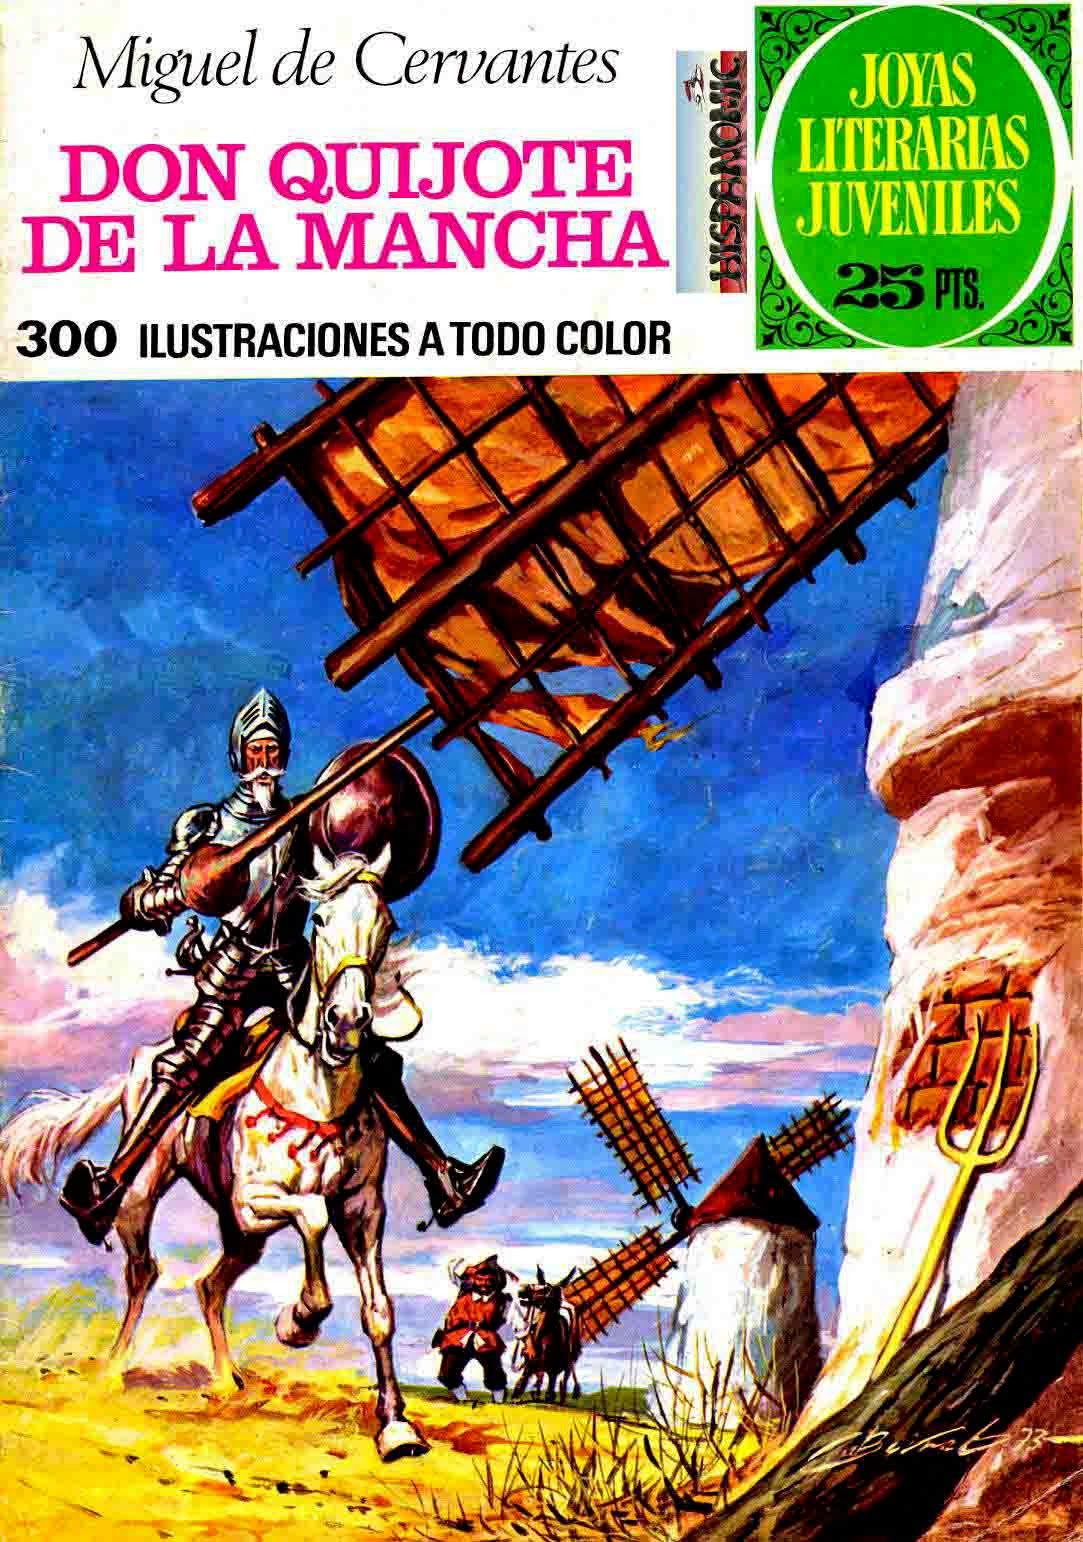 Cómic de Don Quijote